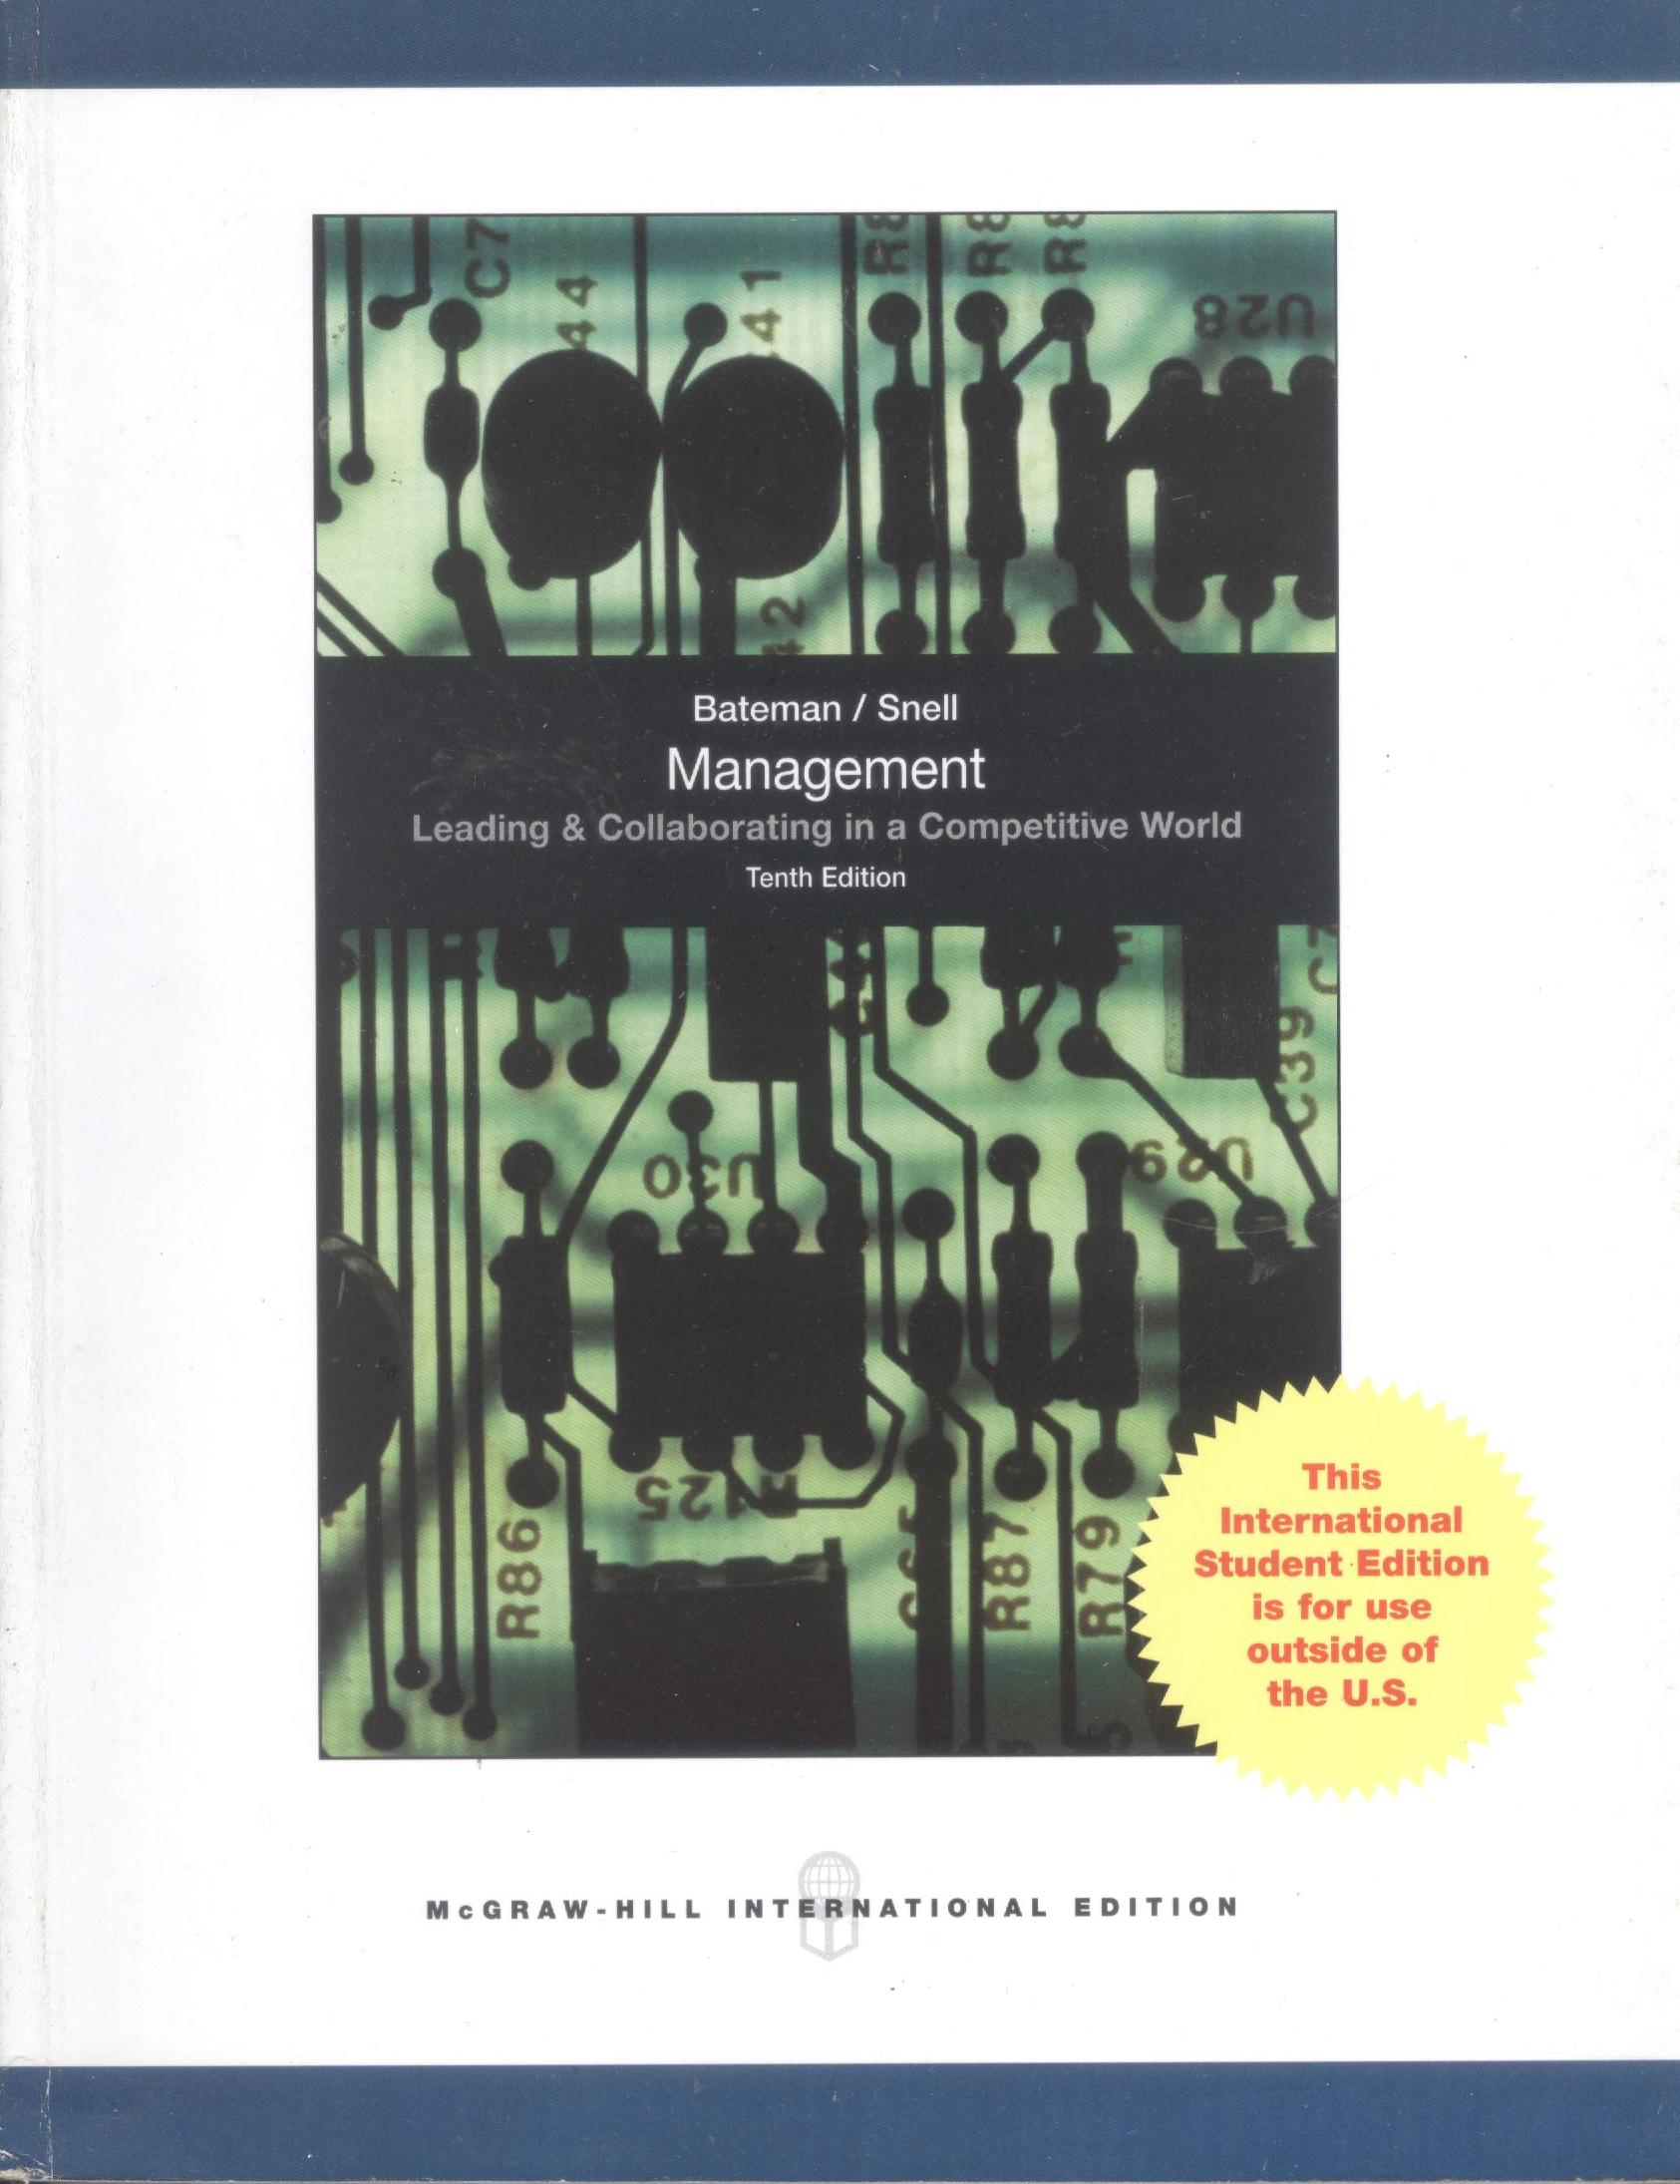 management 10th edition bateman snell mcgraw hill pdf Free pdf download now management 10th edition bateman snell mcgraw hill related searches for management tenth bateman snell management by bateman snell.